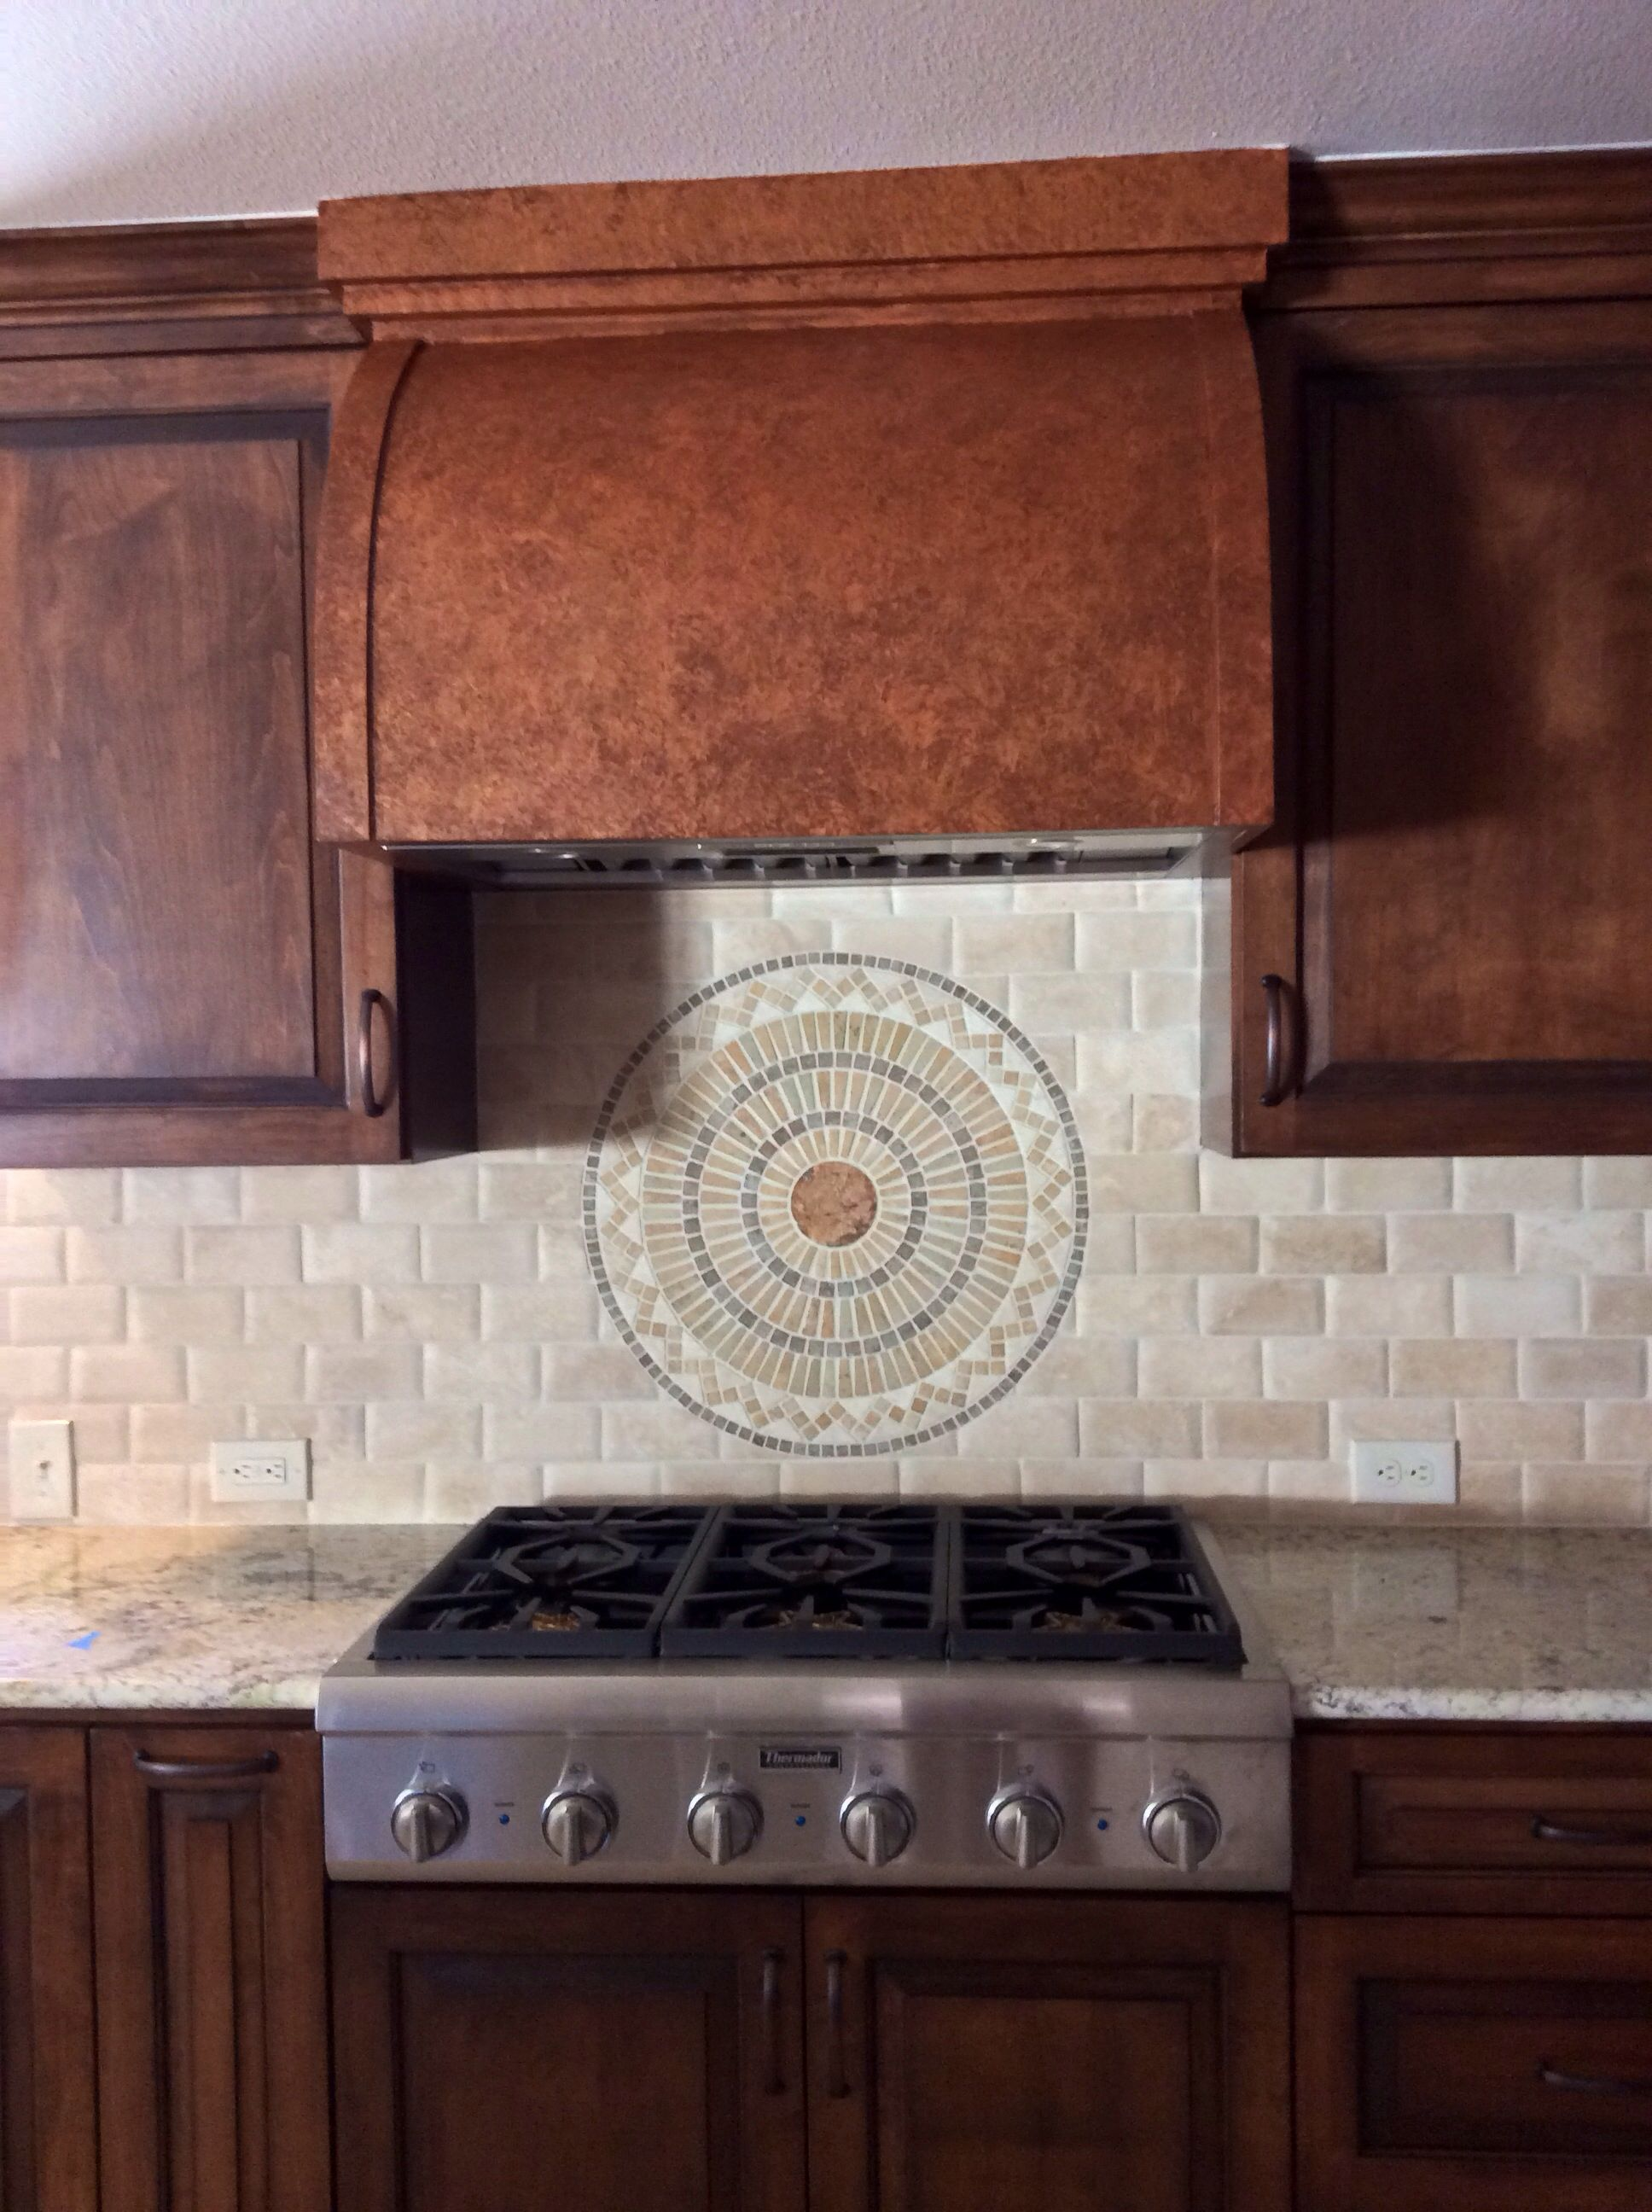 Use A Medallion As A Centerpiece Behind Stove Home Kitchens